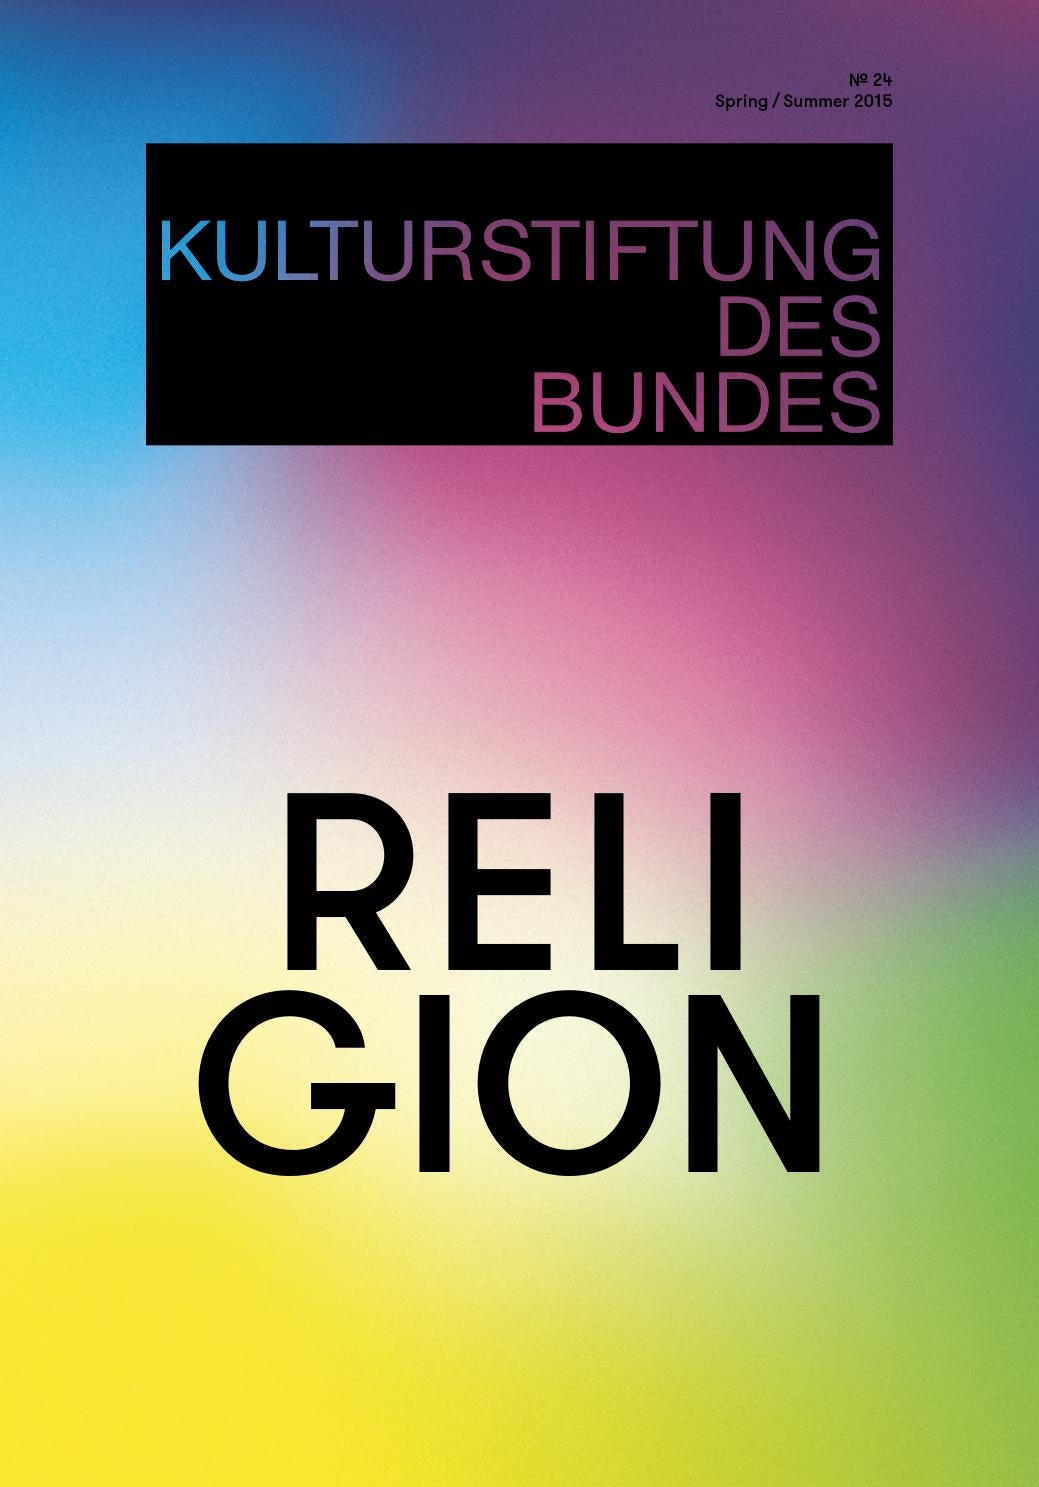 Magazine #24 of the Federal Cultural Foundation / Kulturstiftung des Bundes  by Kulturstiftung des Bundes - issuu